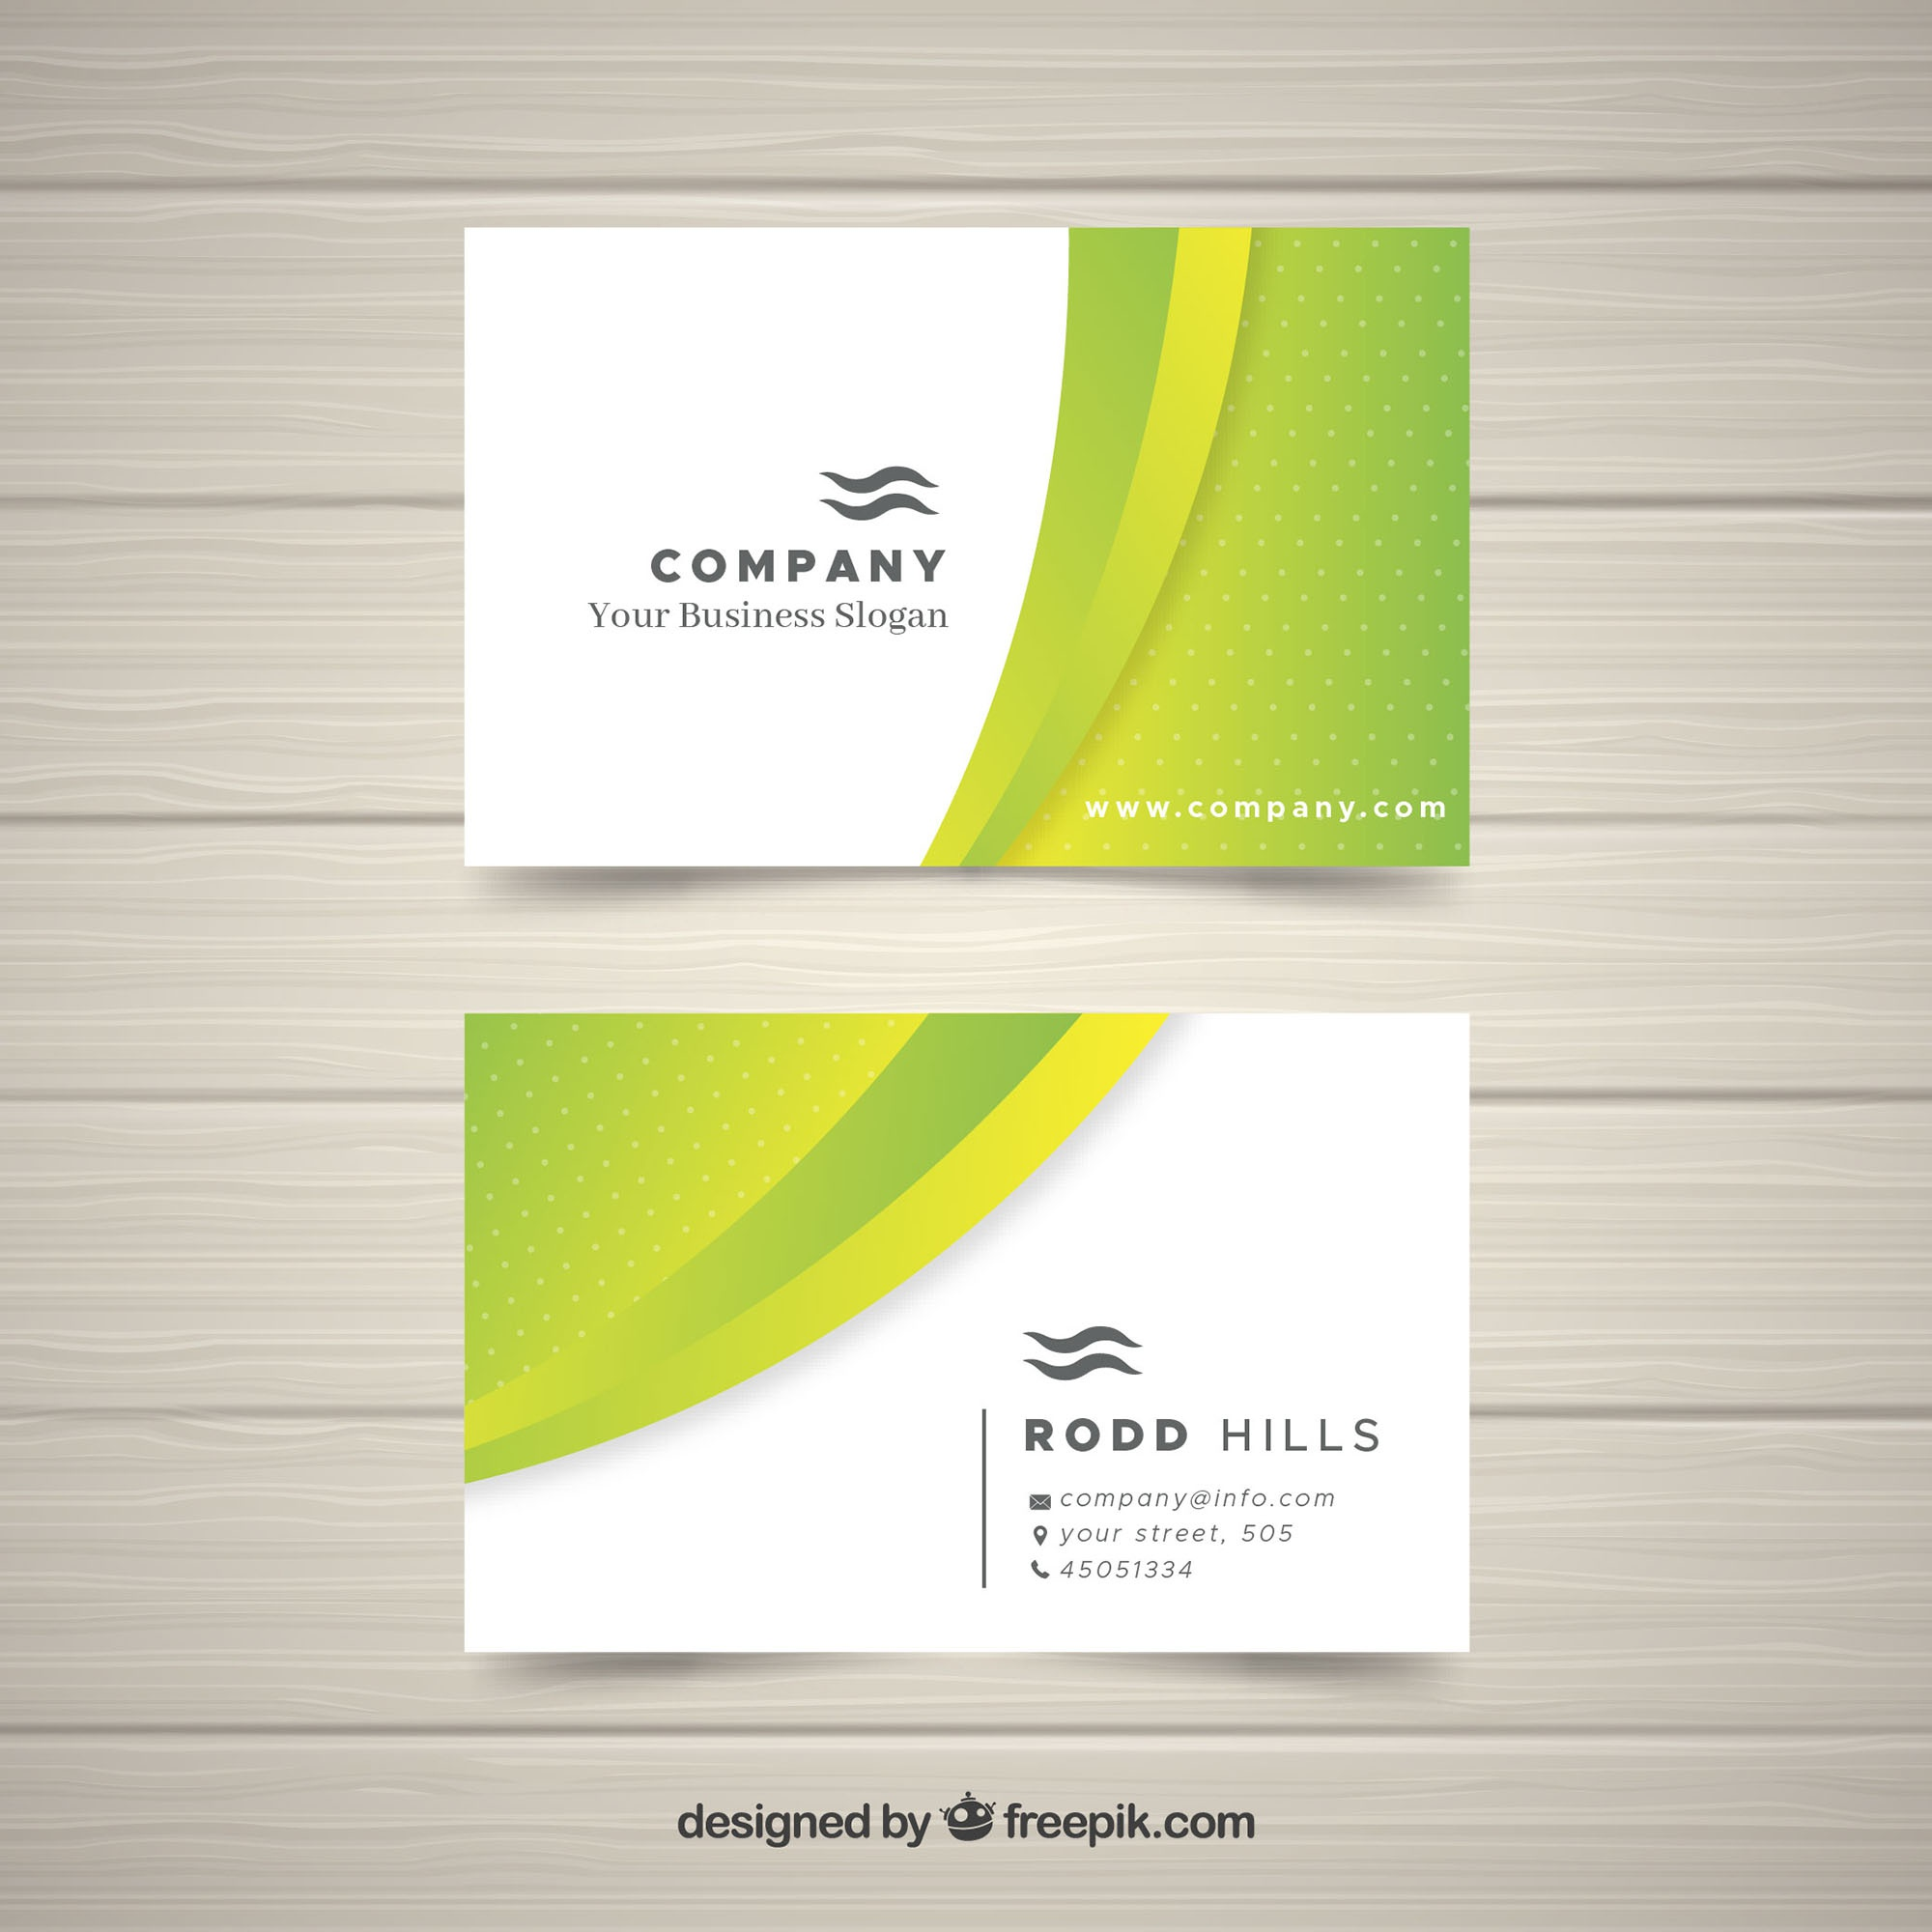 Business card in flat style